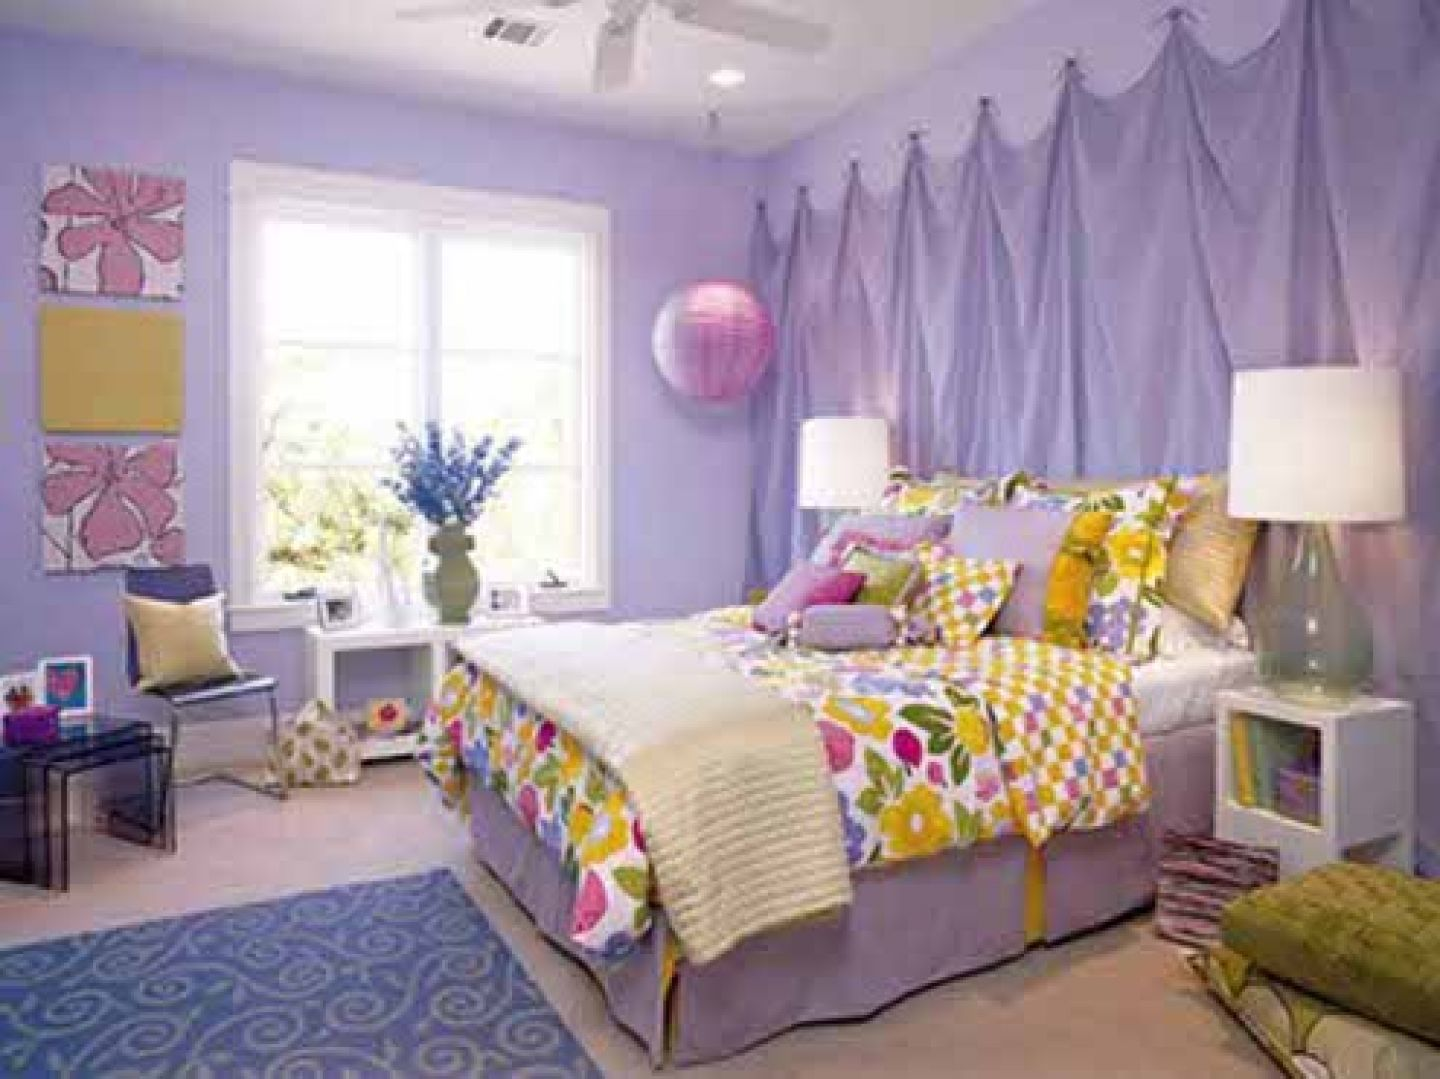 decor for teenage bedrooms - Girl Bedroom Decor Ideas